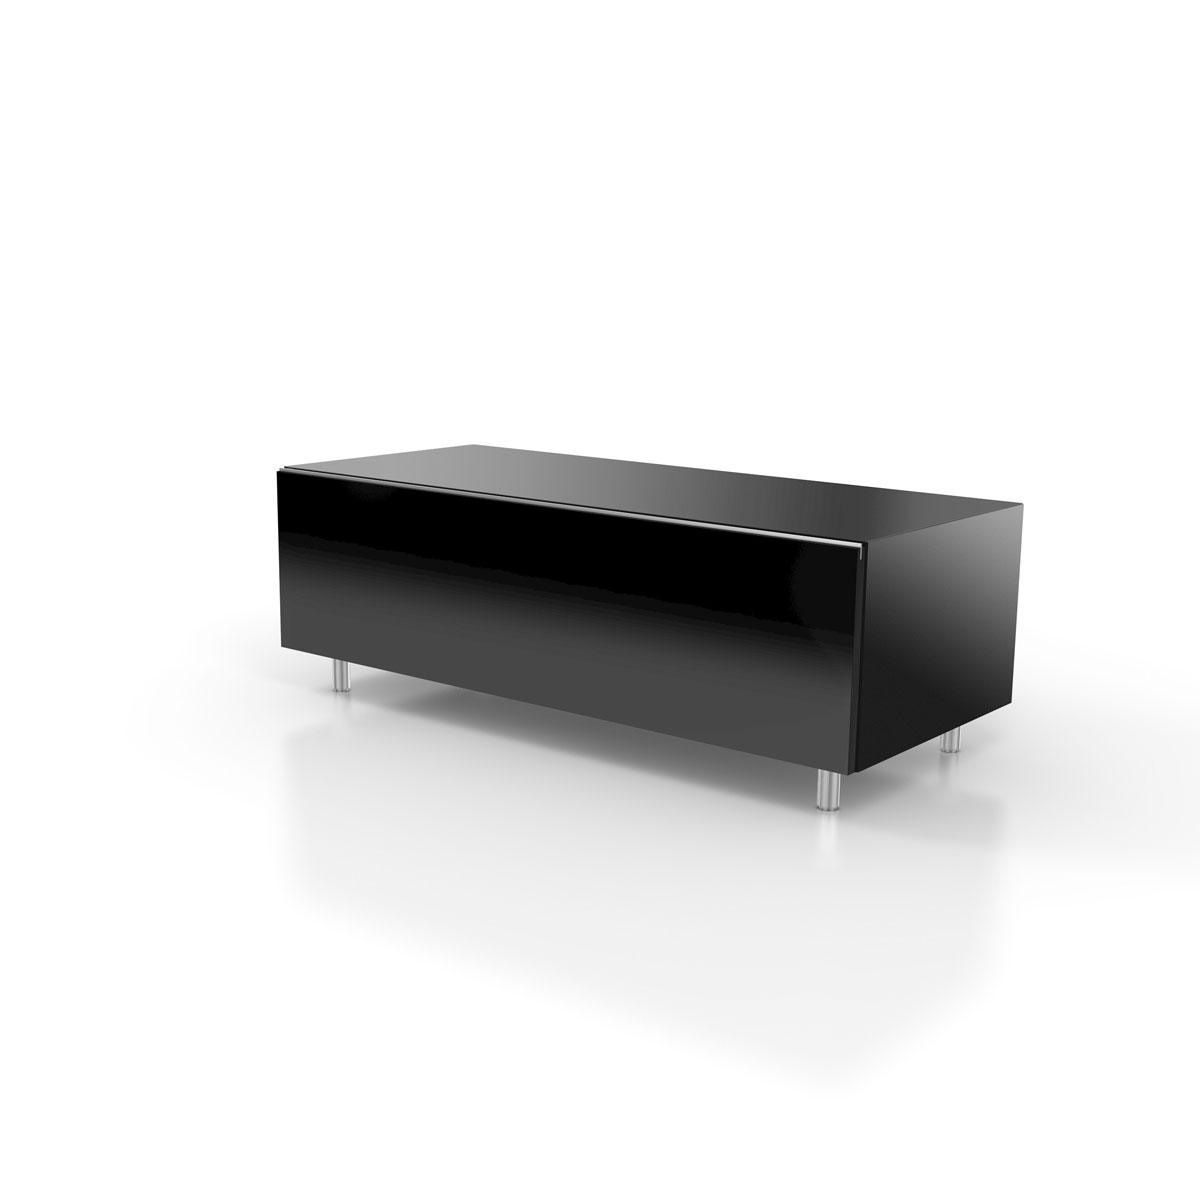 Soundelement, Stoffbespannte Klappe, Soundsystemvorbereitung, verdeckte Kabelführung, TV Lowboard, TV Sideboard, TV Regal, TV Möbel, TV Schrank, TV Rack, Hifi Möbel, verglast, für Soundbarintegration, passend für Soundbars und Subwoofer, Just Racks